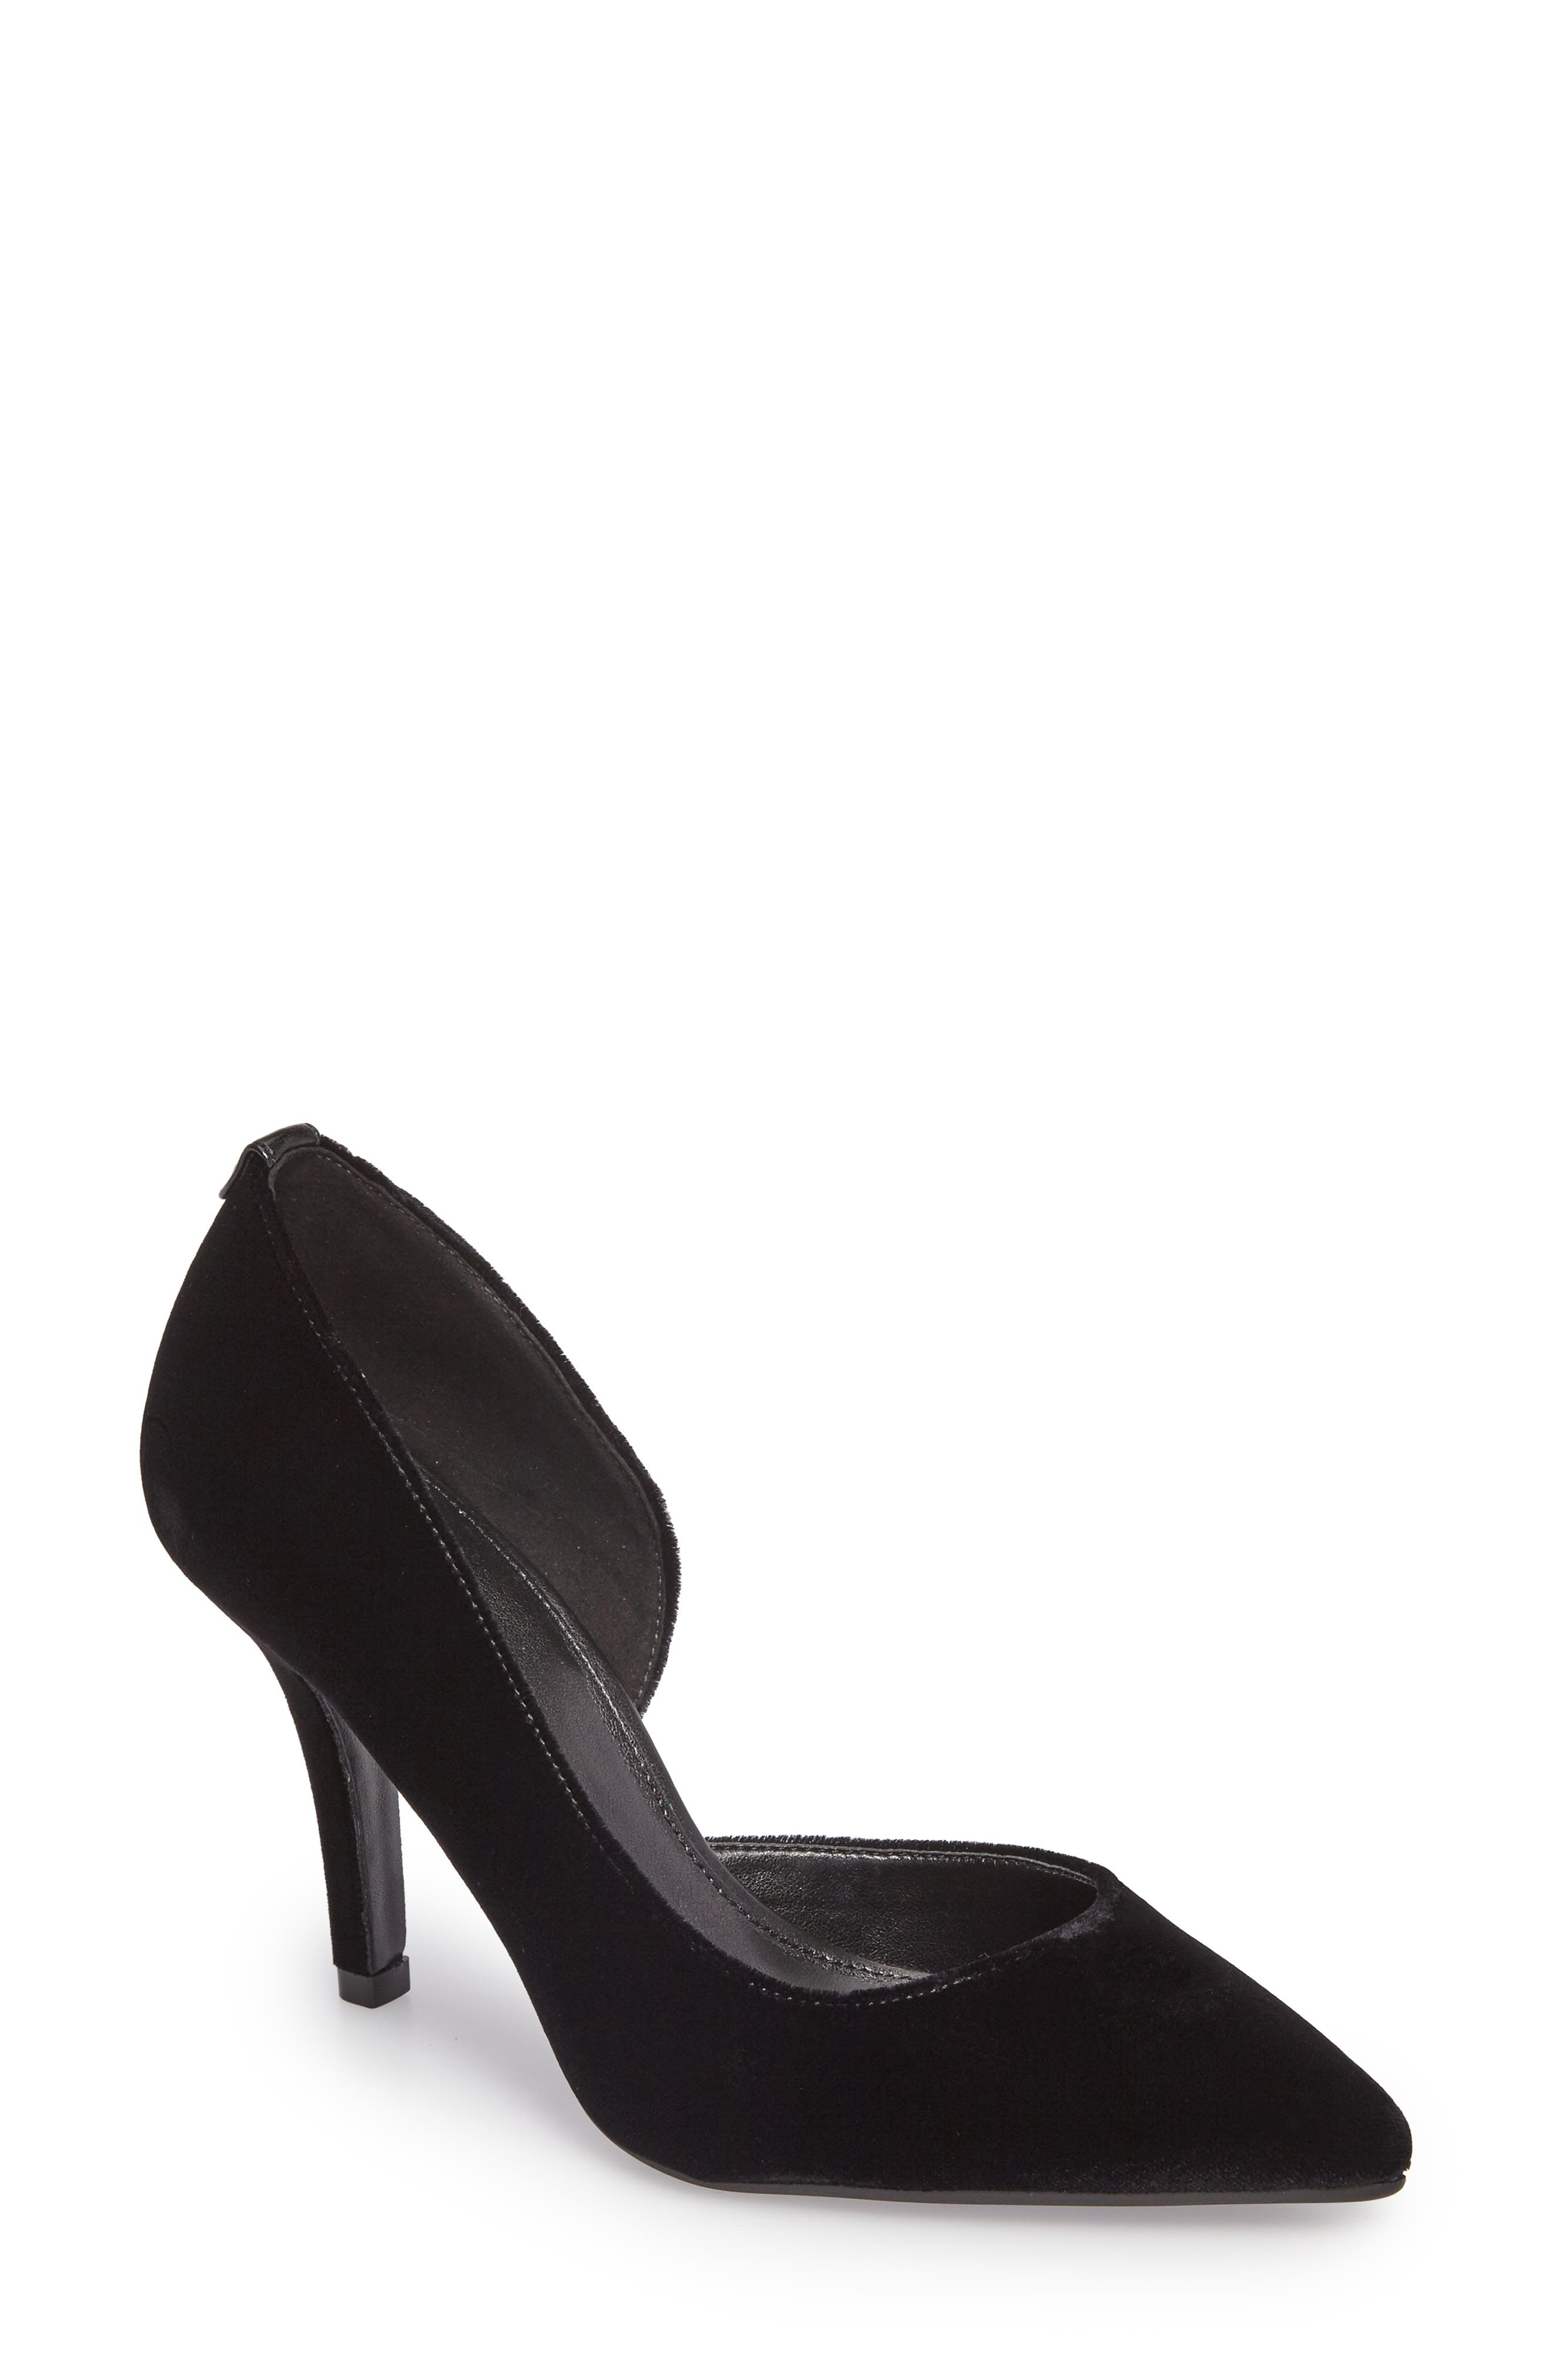 'Nathalie Flex' Half D'Orsay Pump,                             Main thumbnail 1, color,                             002